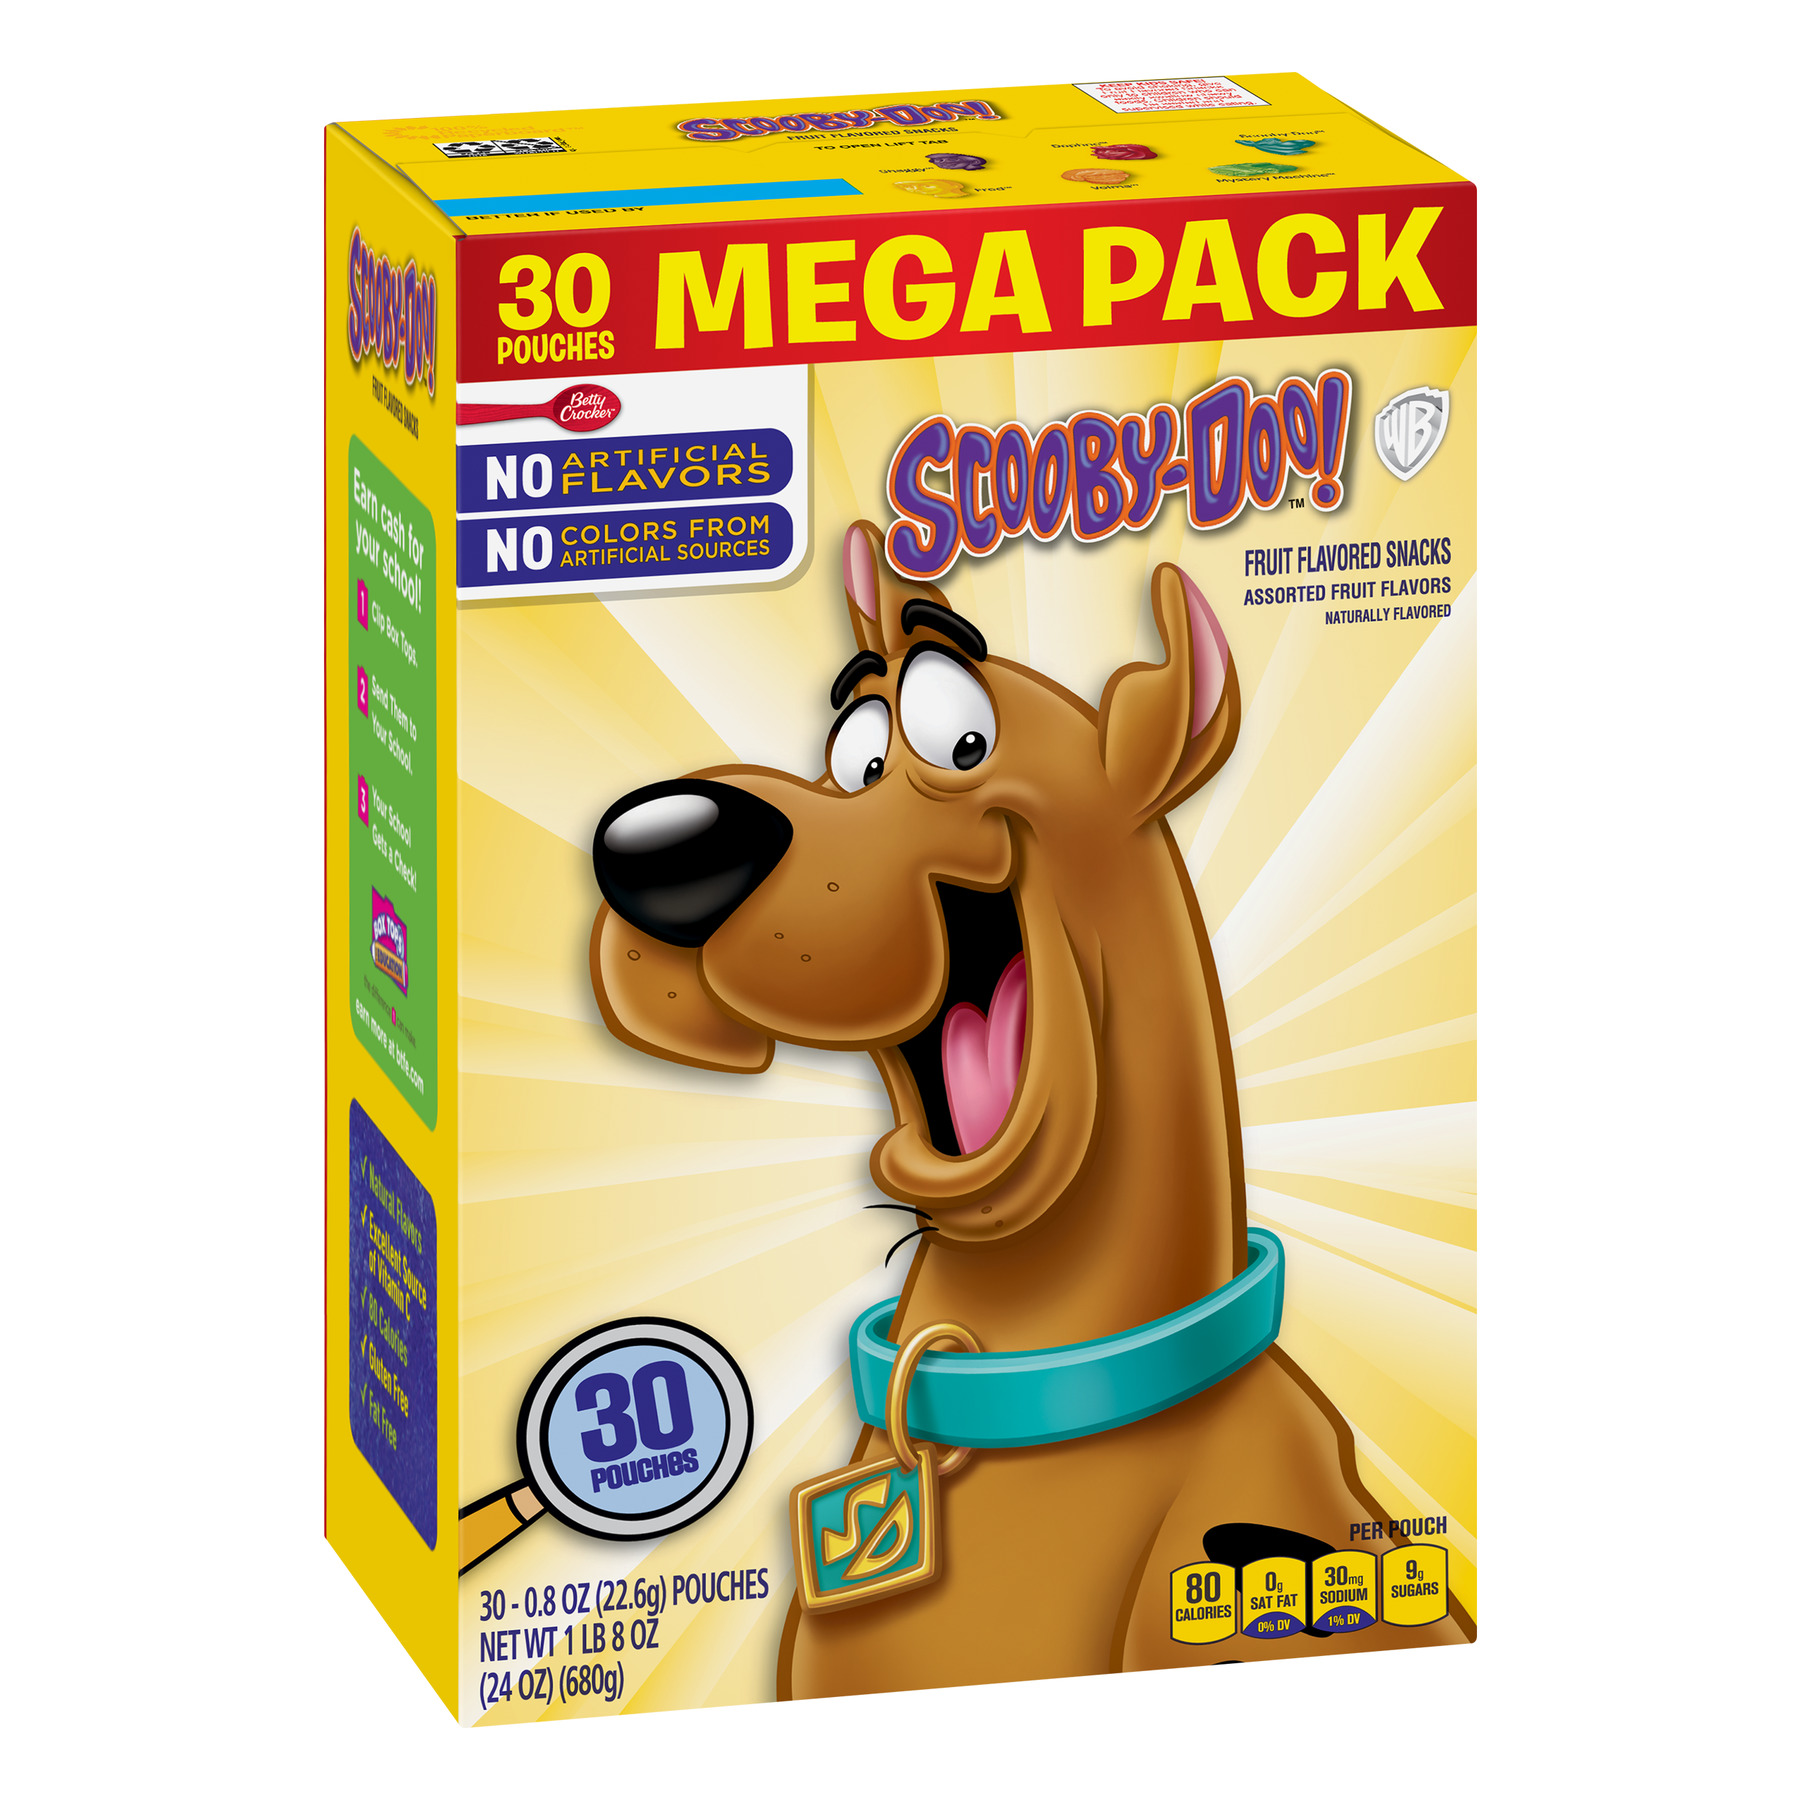 Betty Crocker Fruit Snacks, Scooby Doo Snacks, Mega Pack, 30 Pouches, 0.8 oz Each